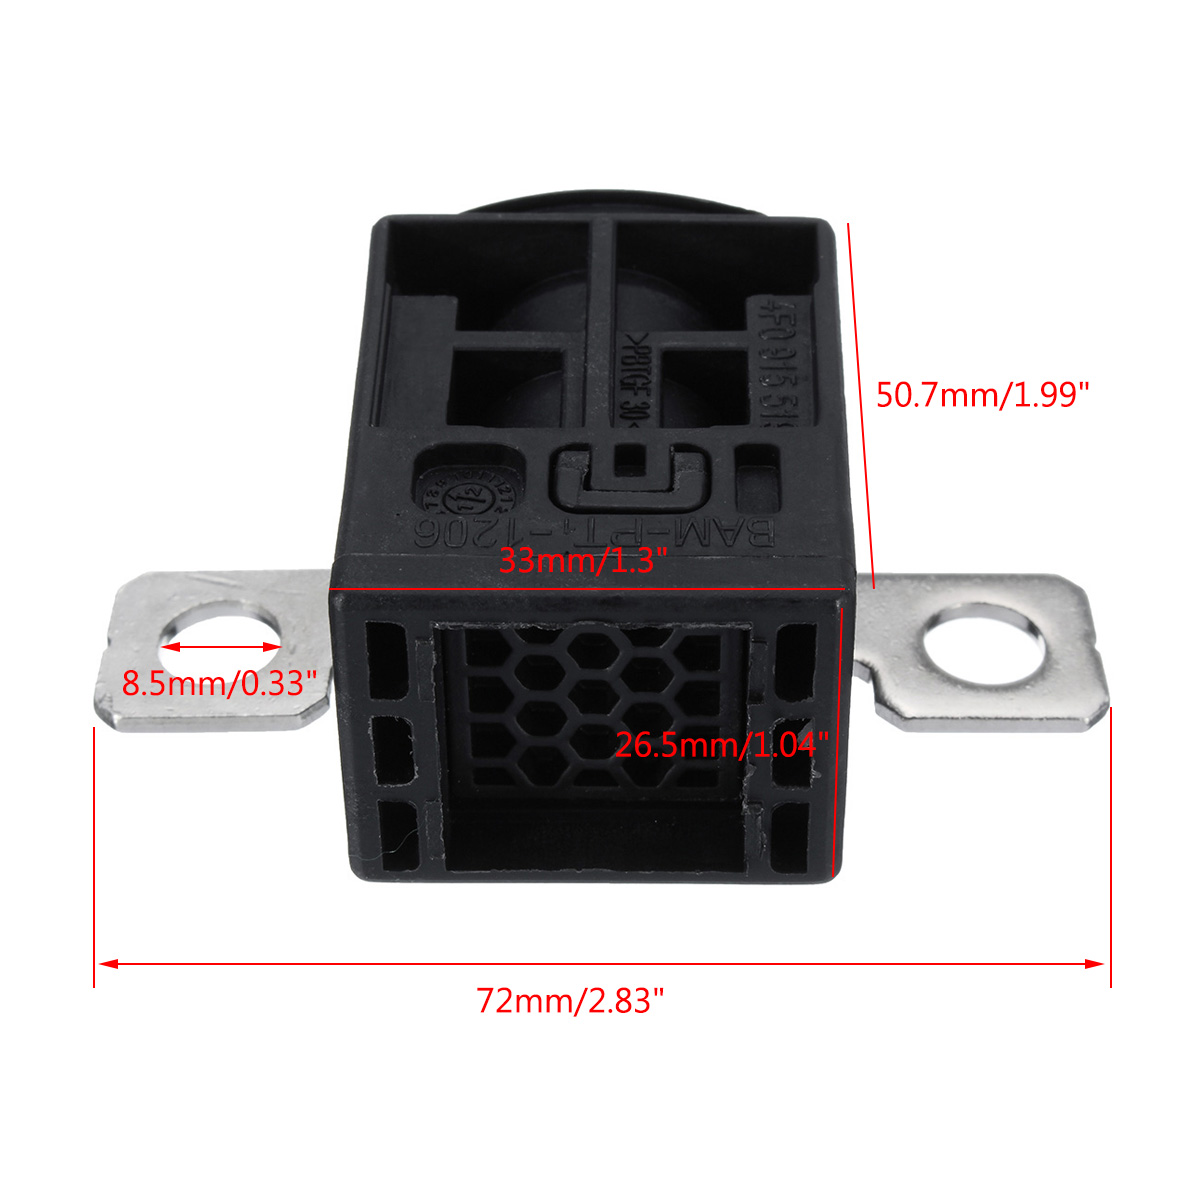 medium resolution of 4f0915519 battery fuse box cut off overload protection trip for audi q5 a5 a7 a6